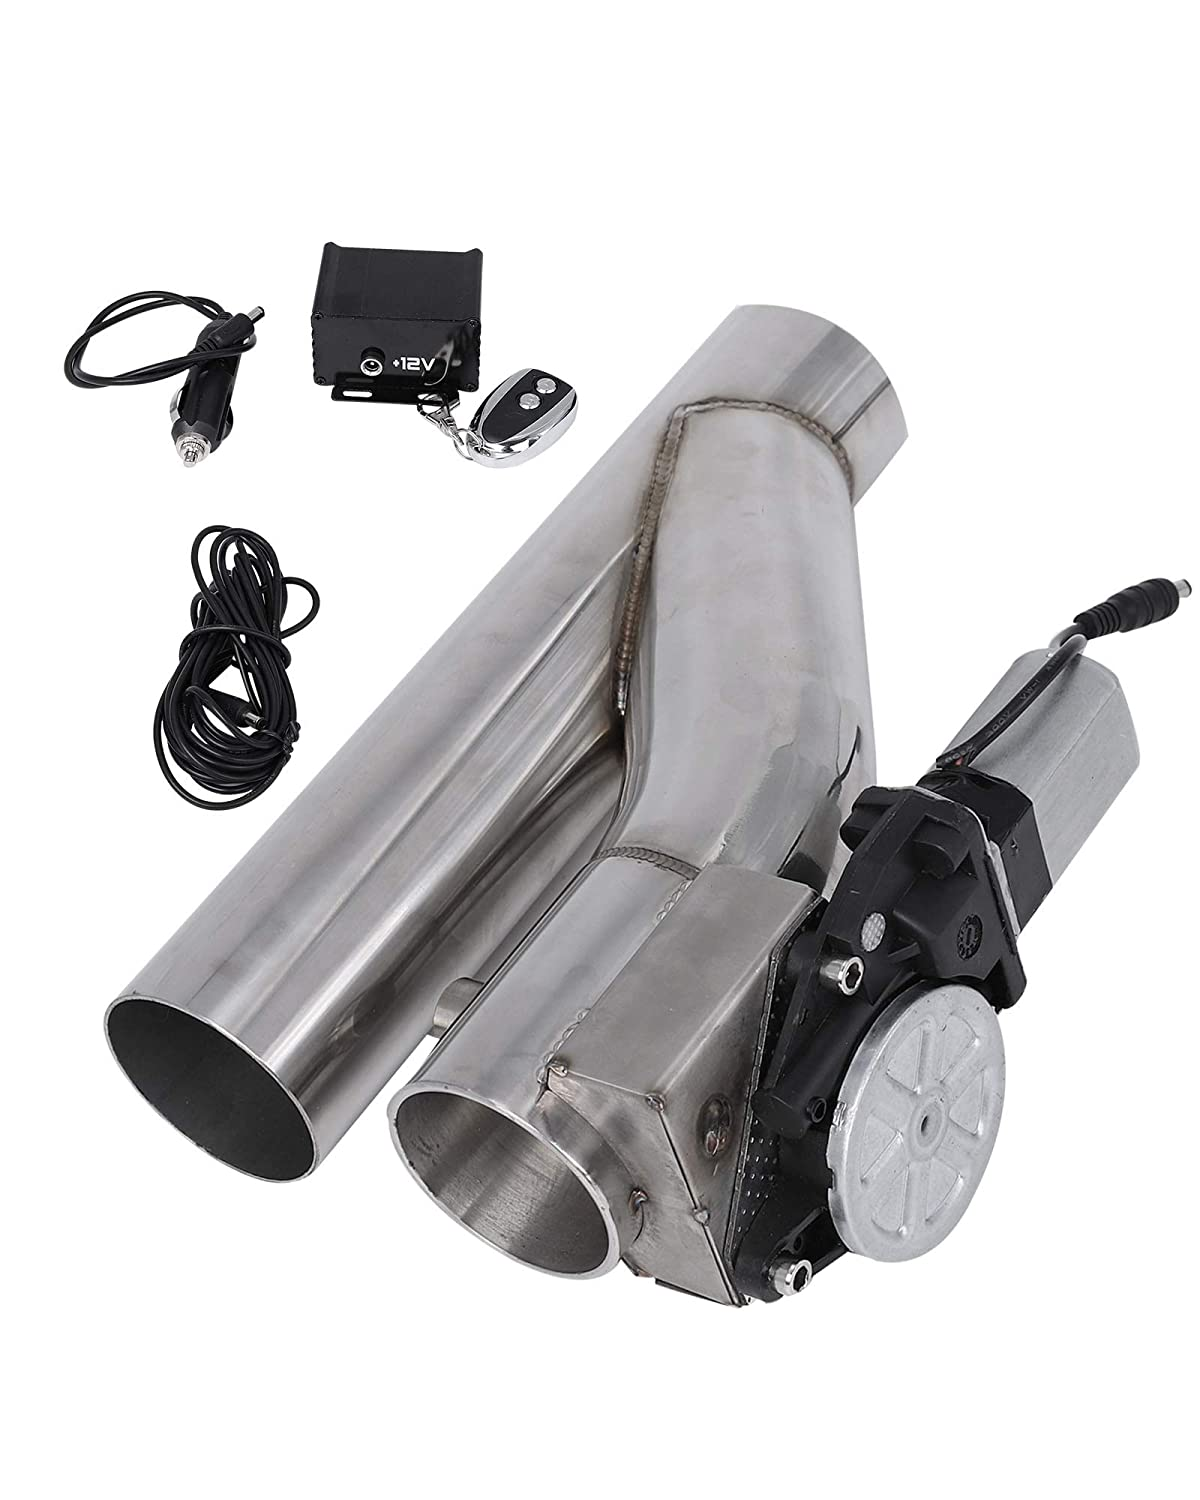 BLACKHORSE-RACING 2PCS 2.5' Electric Exhaust Downpipe E-Cut Out Valve System + One Controller Remote Kit blackhorseracing